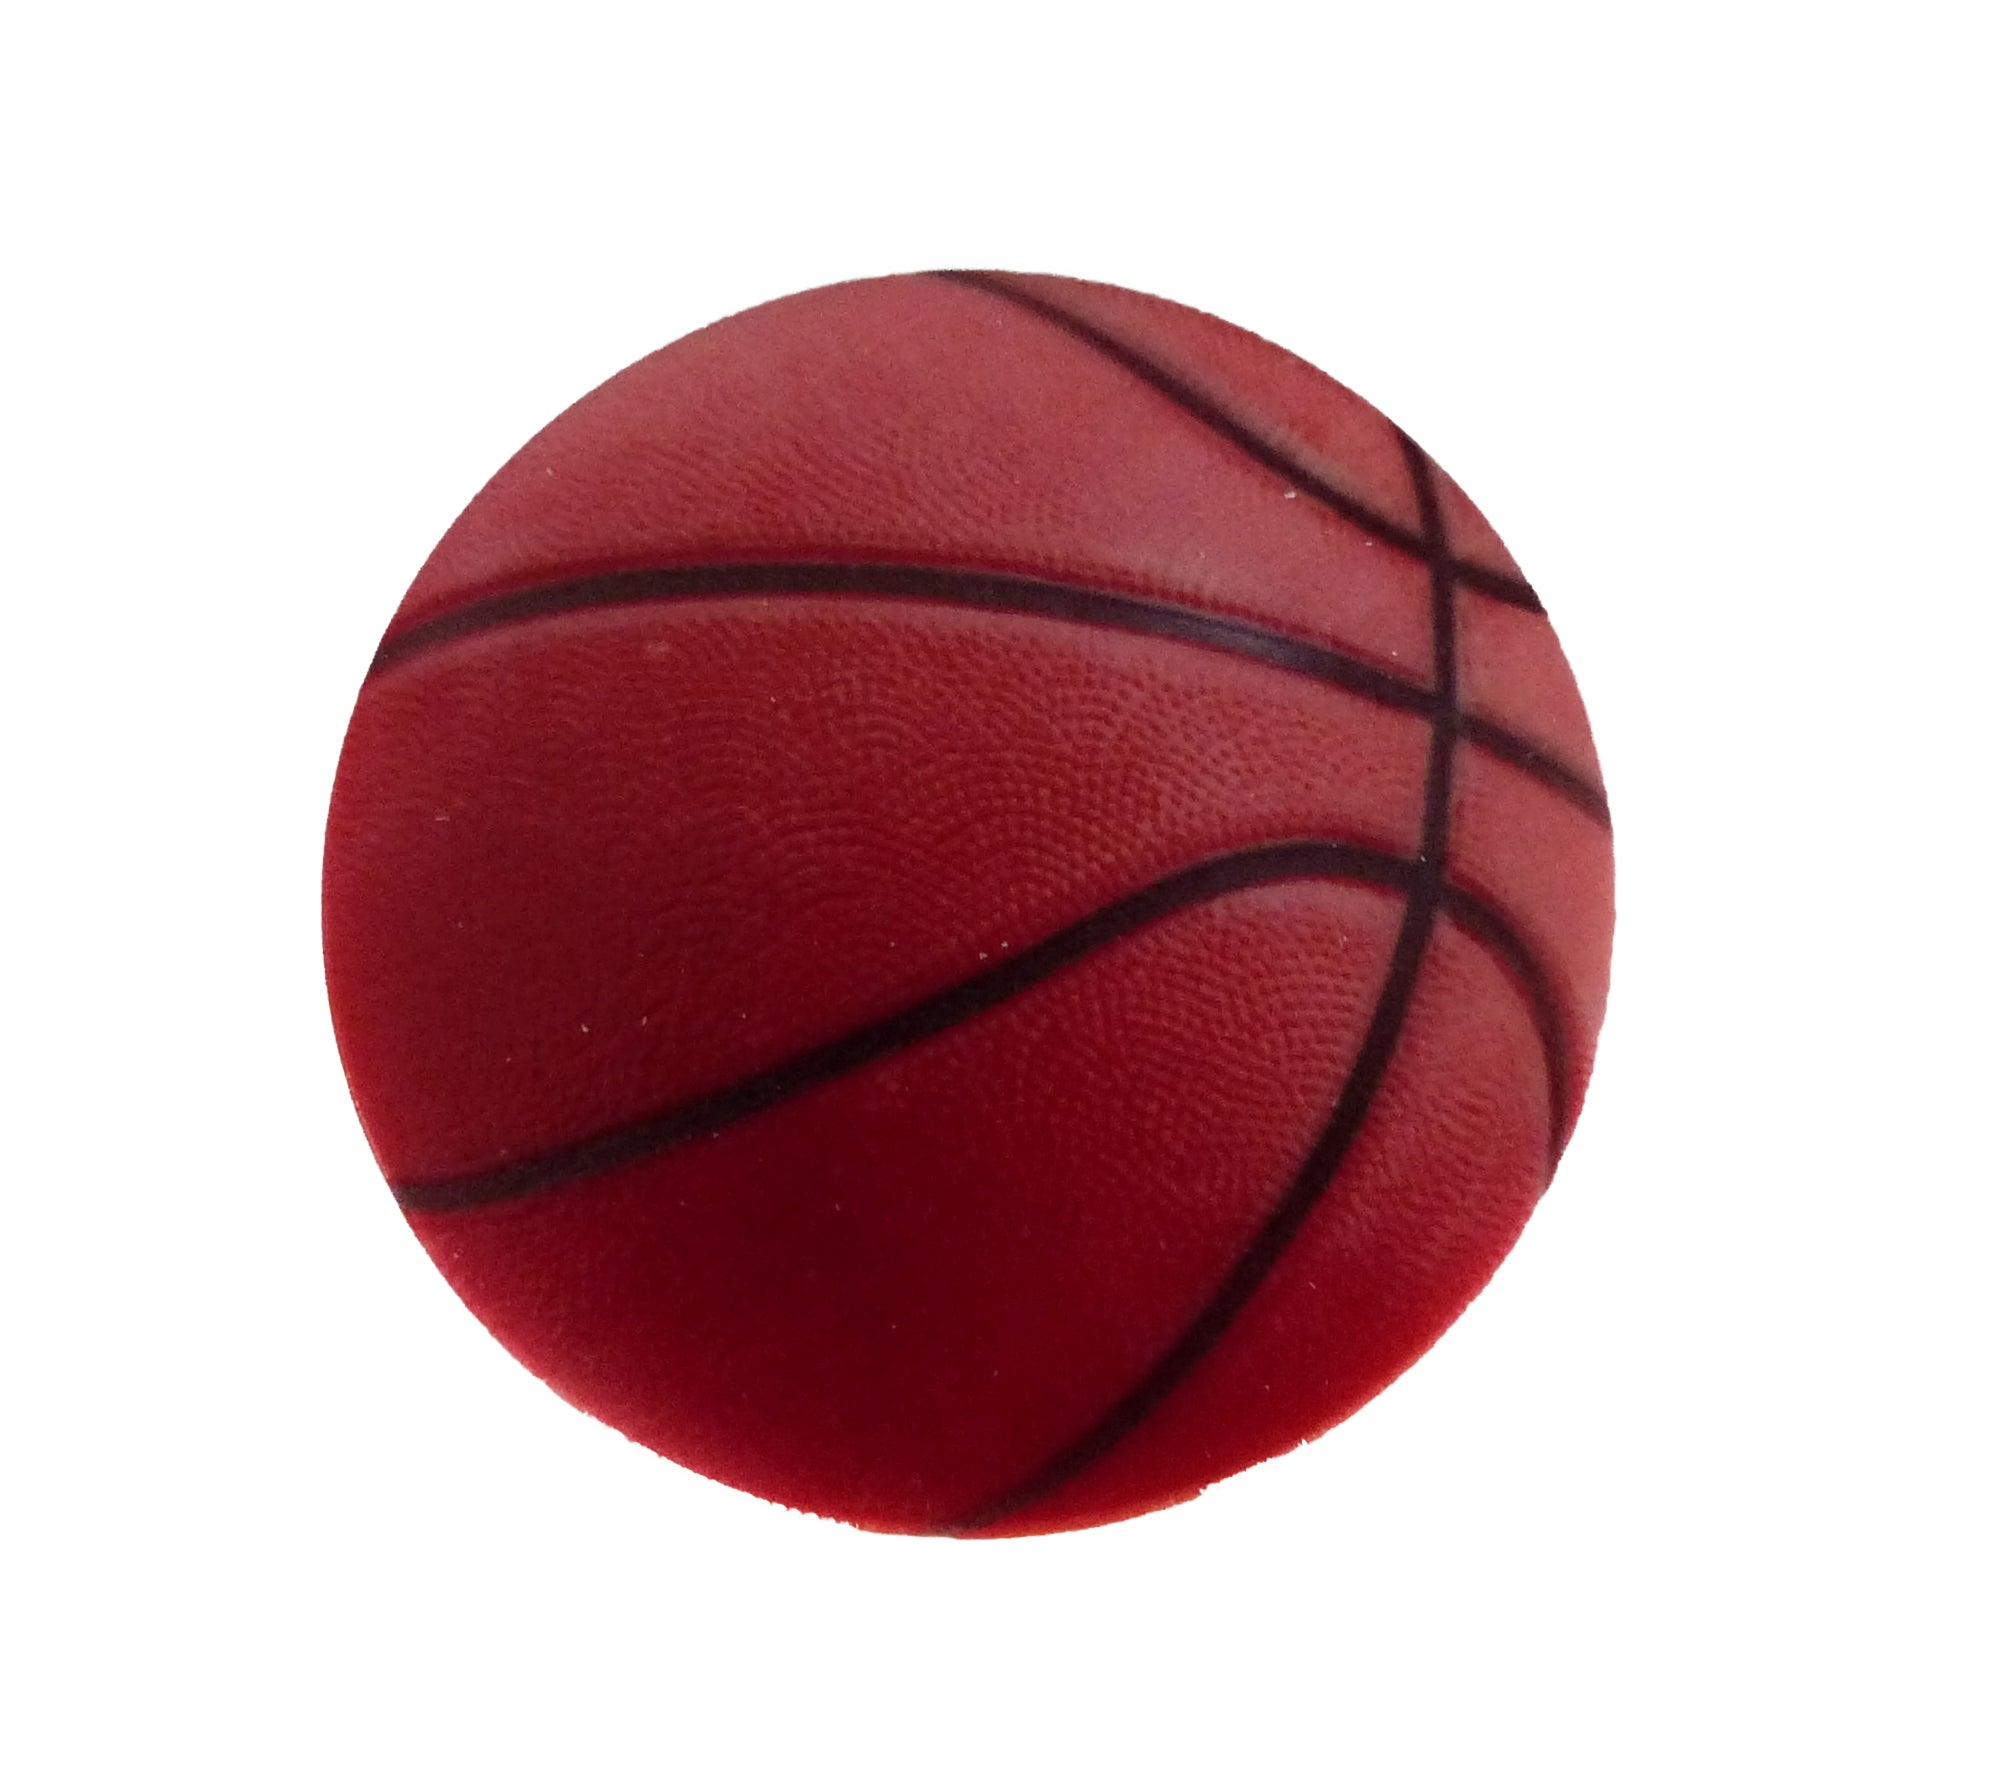 Basketball Popsocket